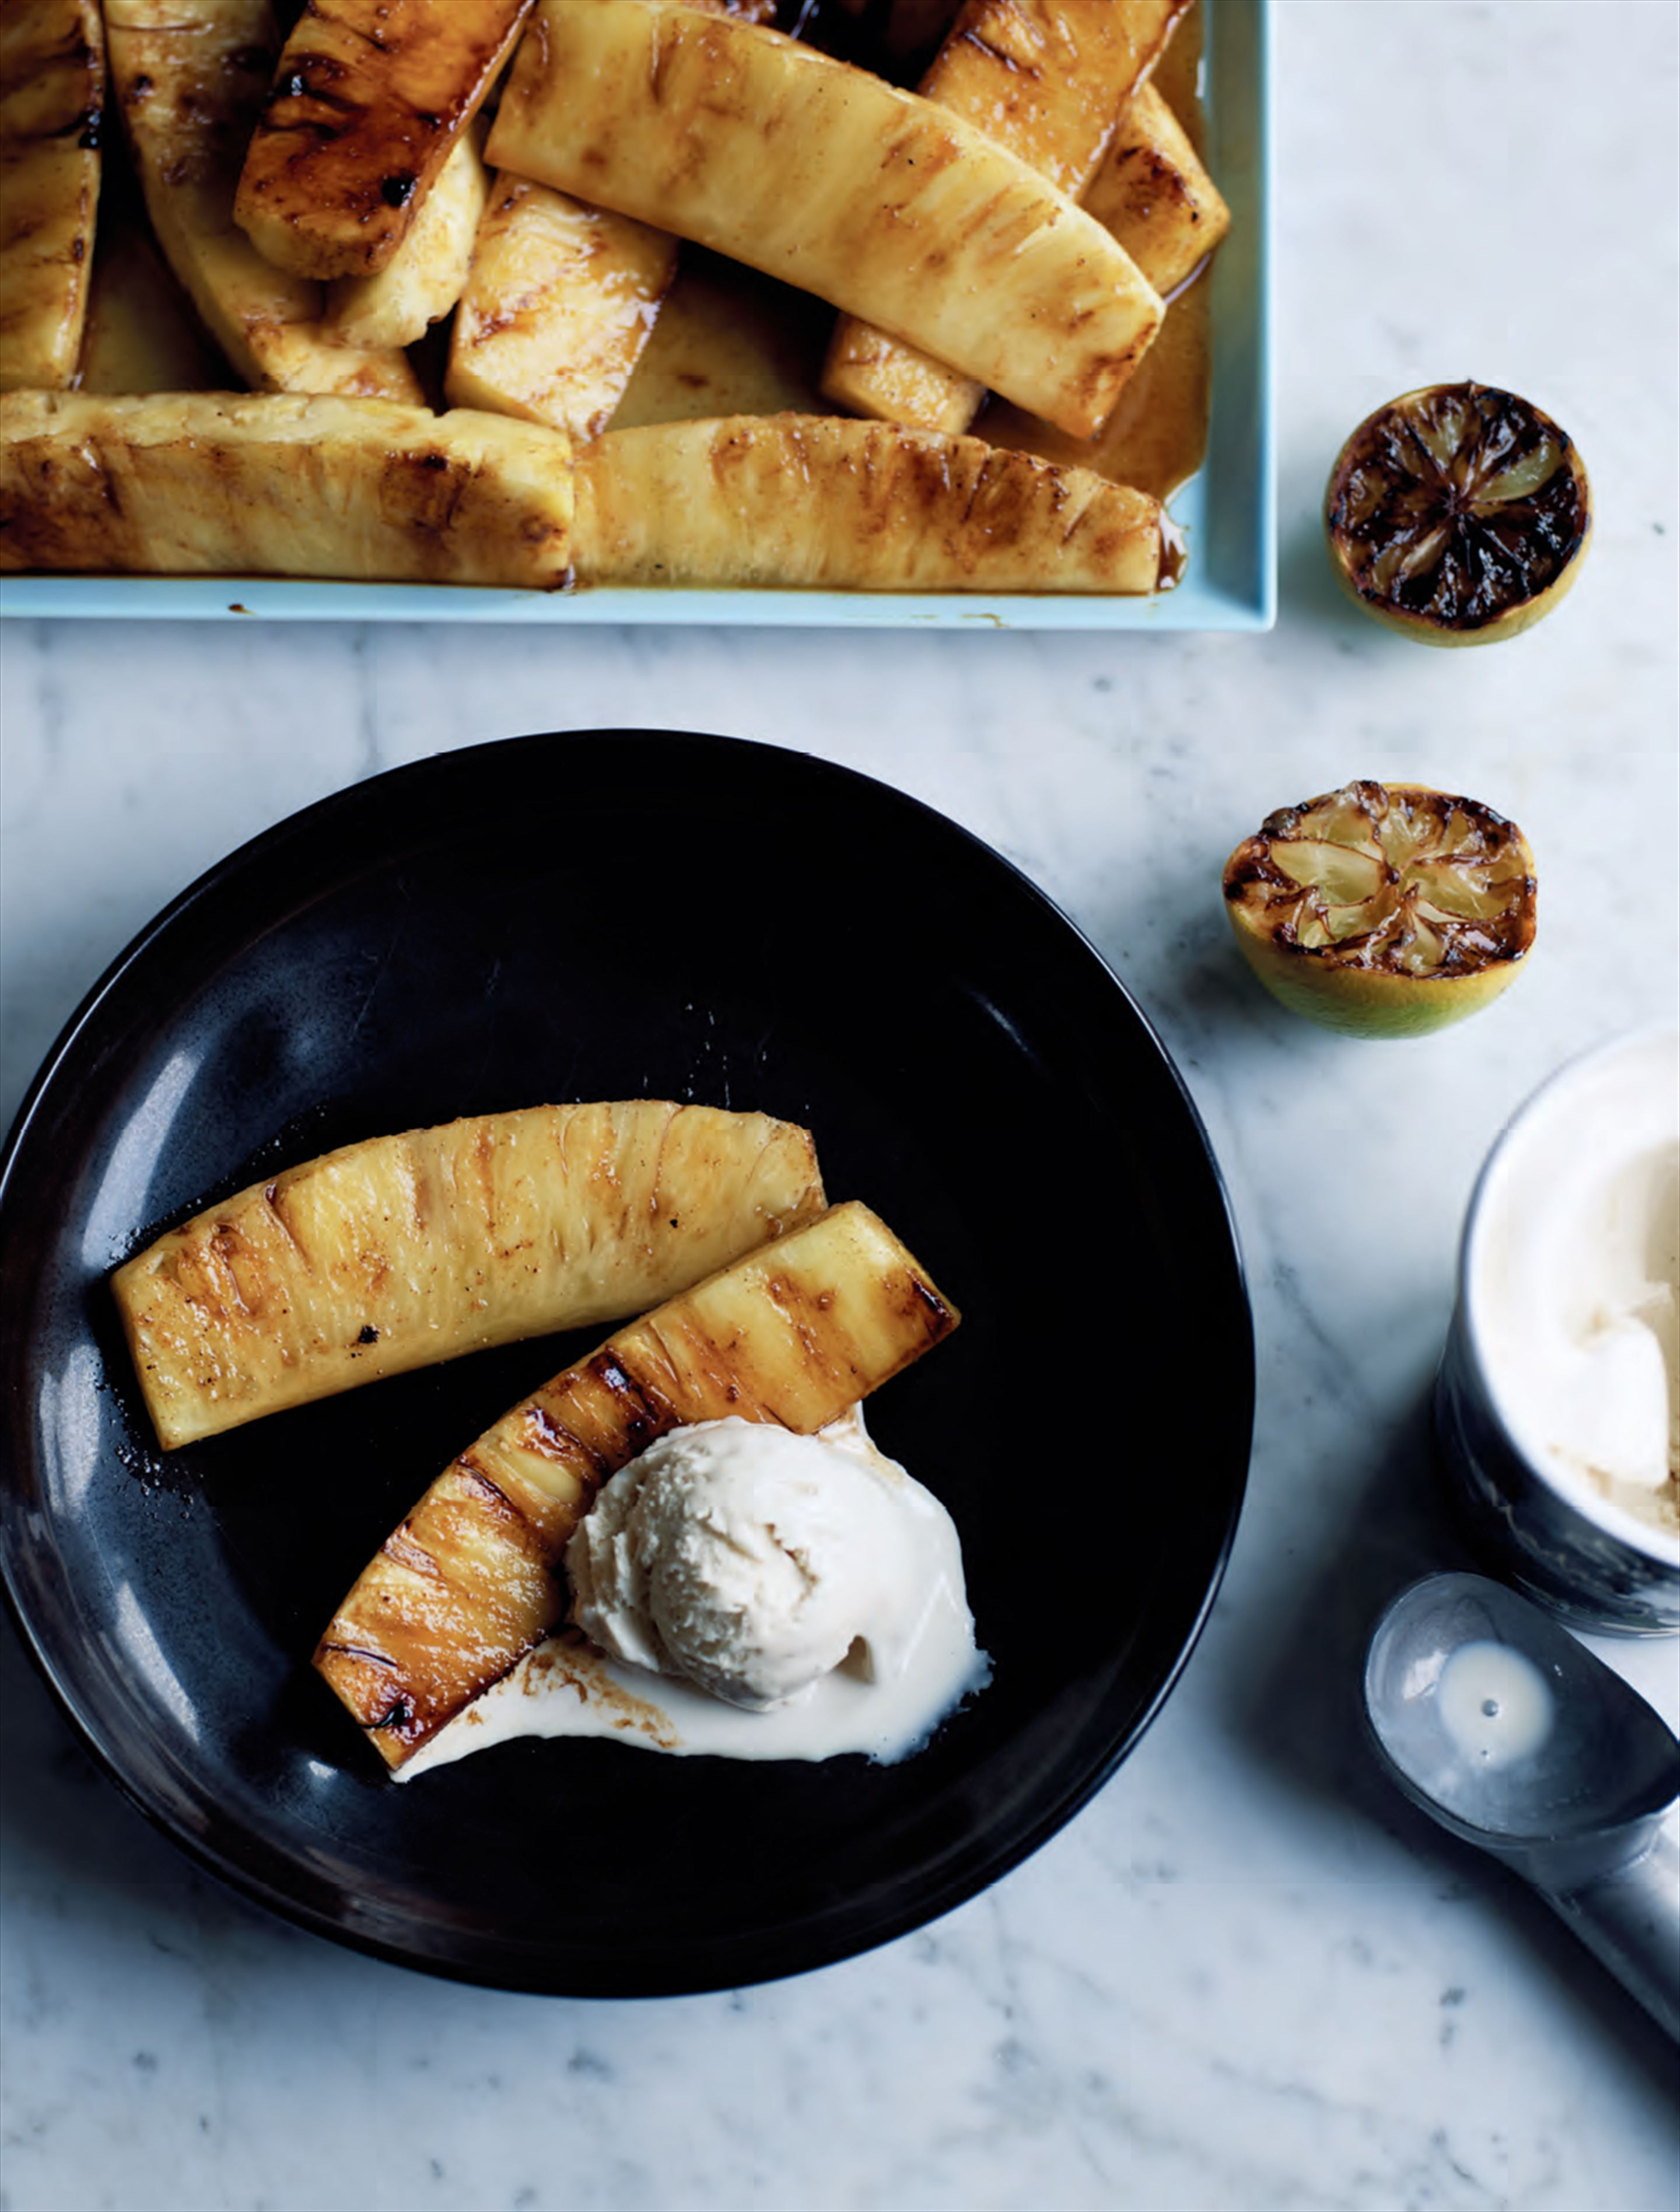 Spiced charred pineapple with ice cream